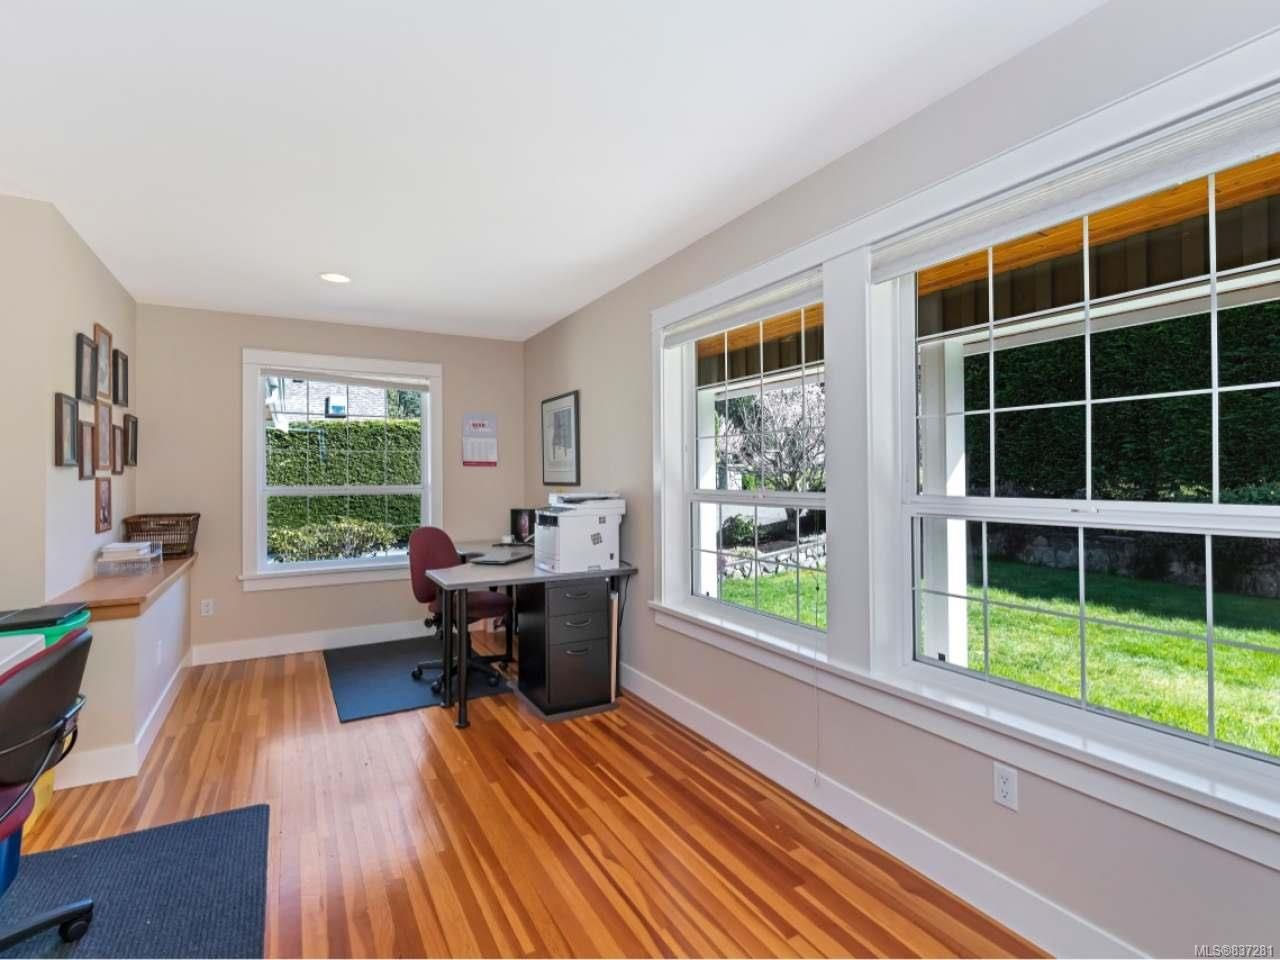 Photo 13: Photos: 925 Lilmac Rd in MILL BAY: ML Mill Bay House for sale (Malahat & Area)  : MLS®# 837281